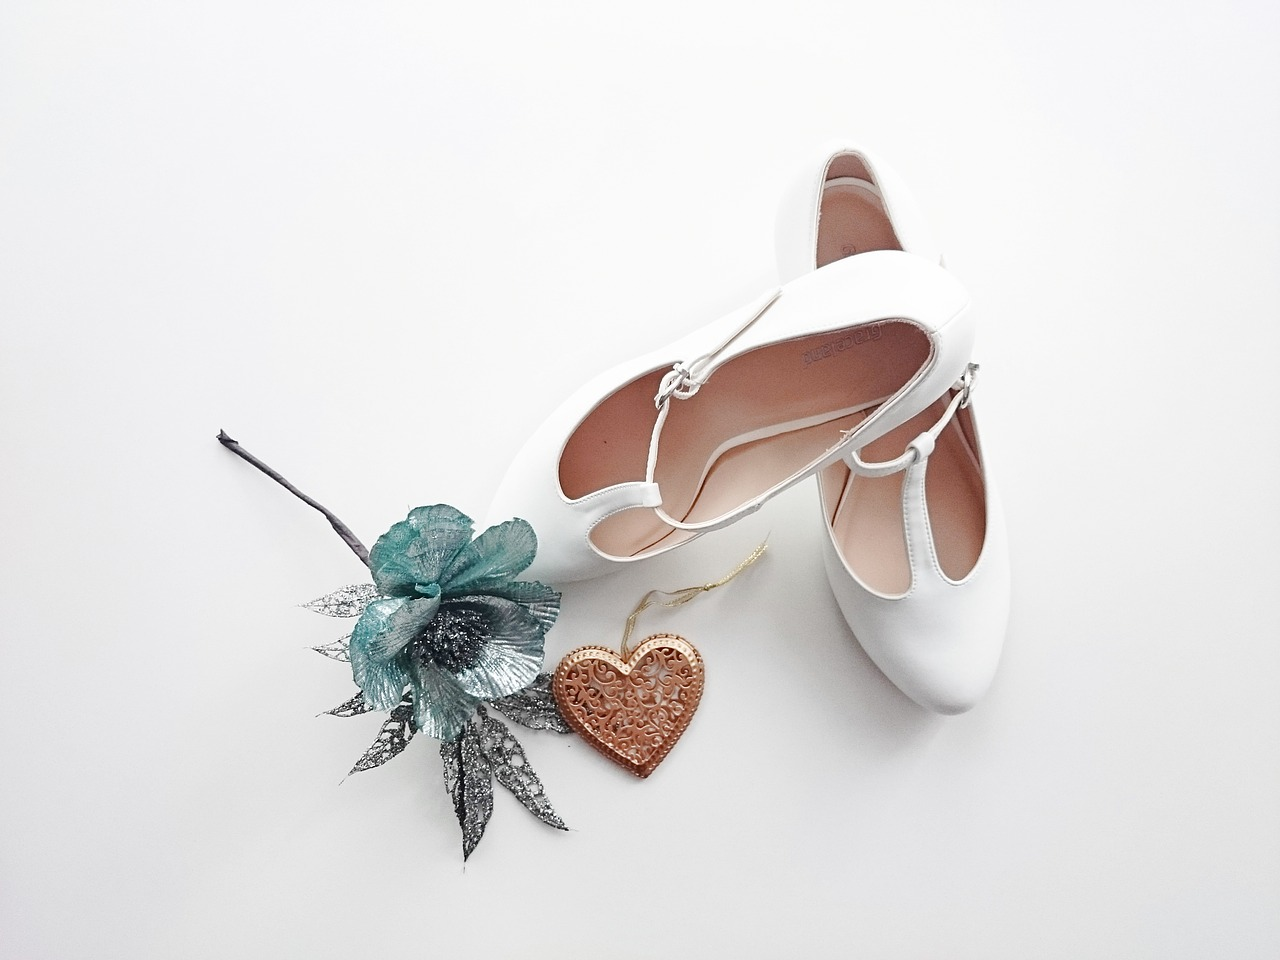 A pair of bridal shoes.